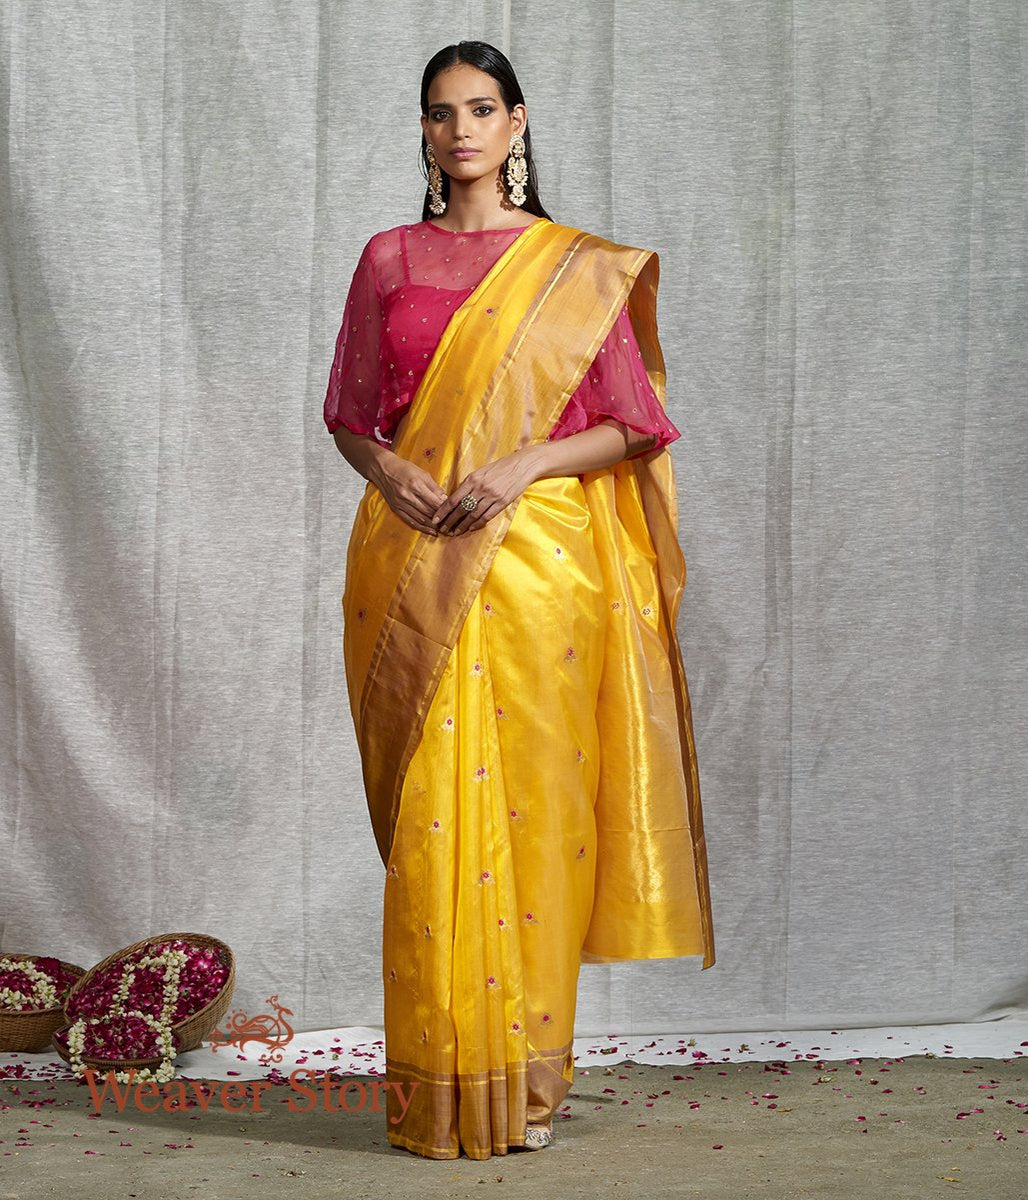 Handwoven Yellow Gold Saree with Small Floral Booti